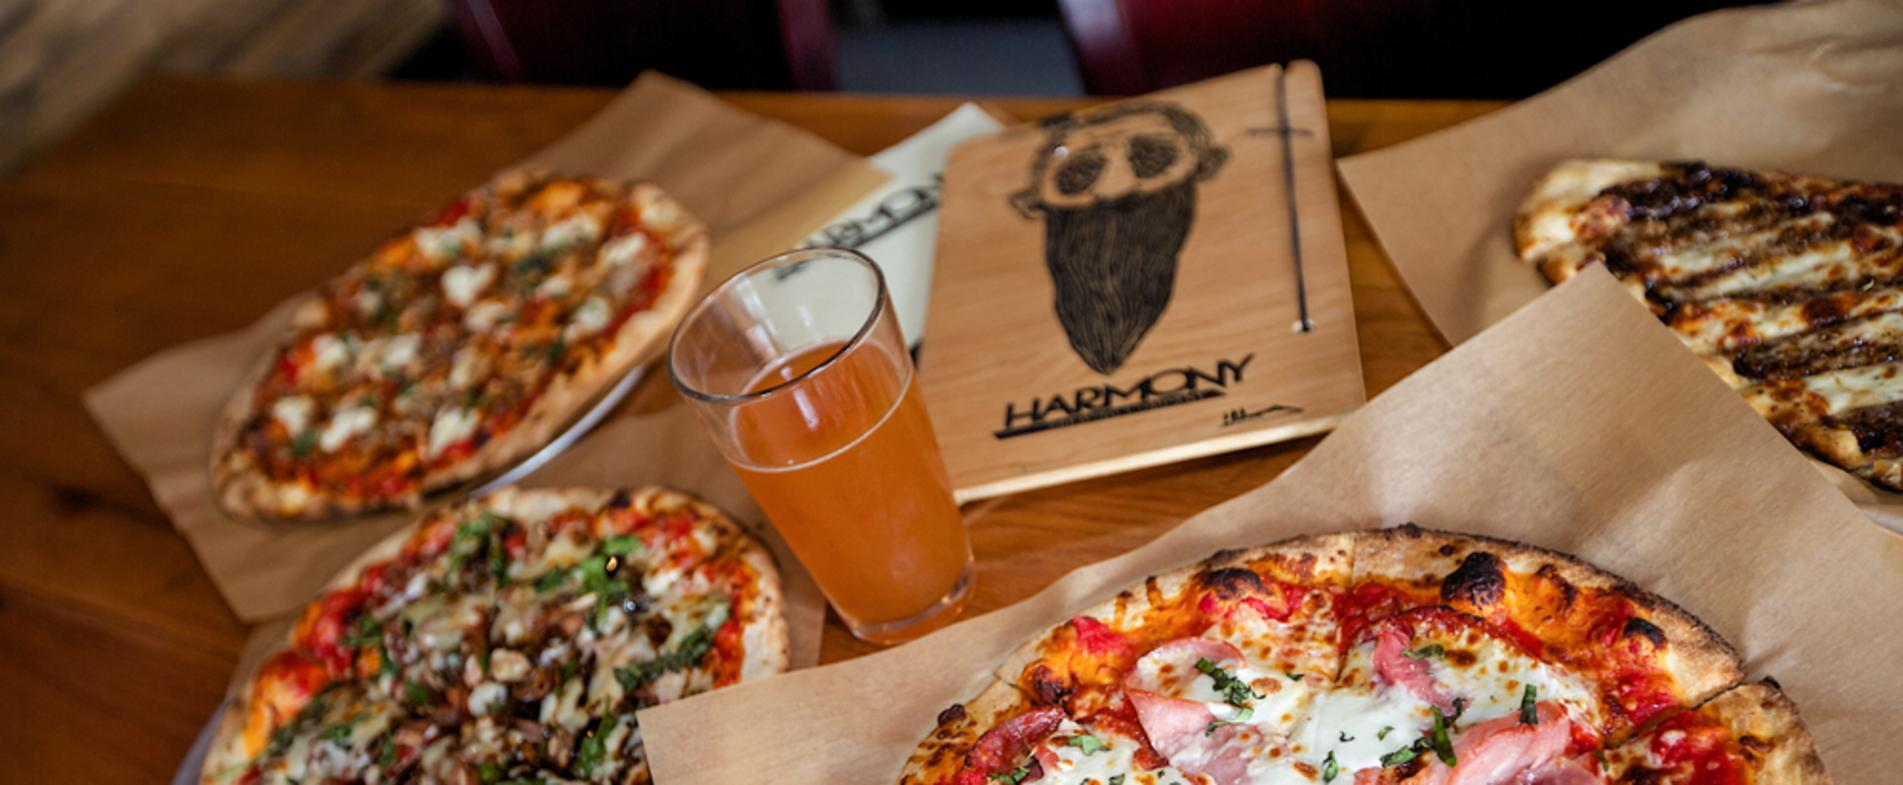 Pizza and Beer at Harmony Brewing